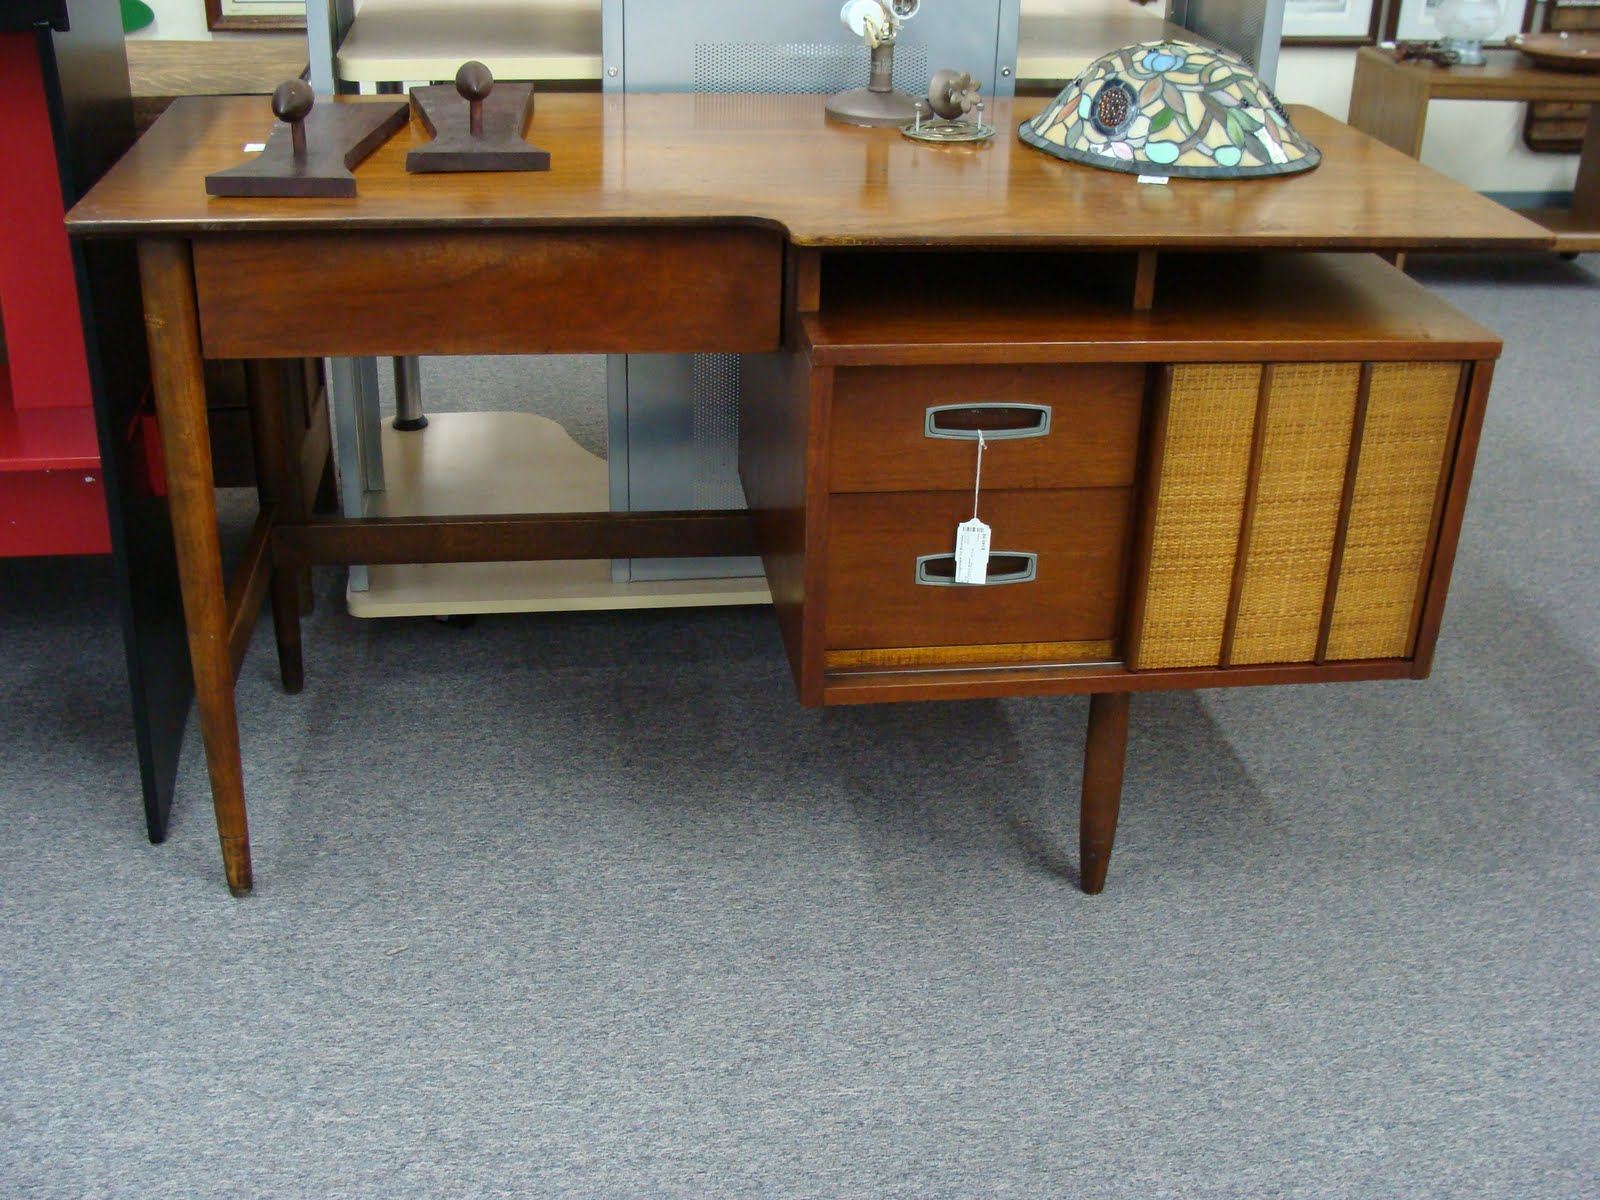 This Fantastic Mid Century Danish Modern Desk Was Spotted Amongst The Riff Raff Regular Old Metal Desks Yawn At A Consignment Over Weekend